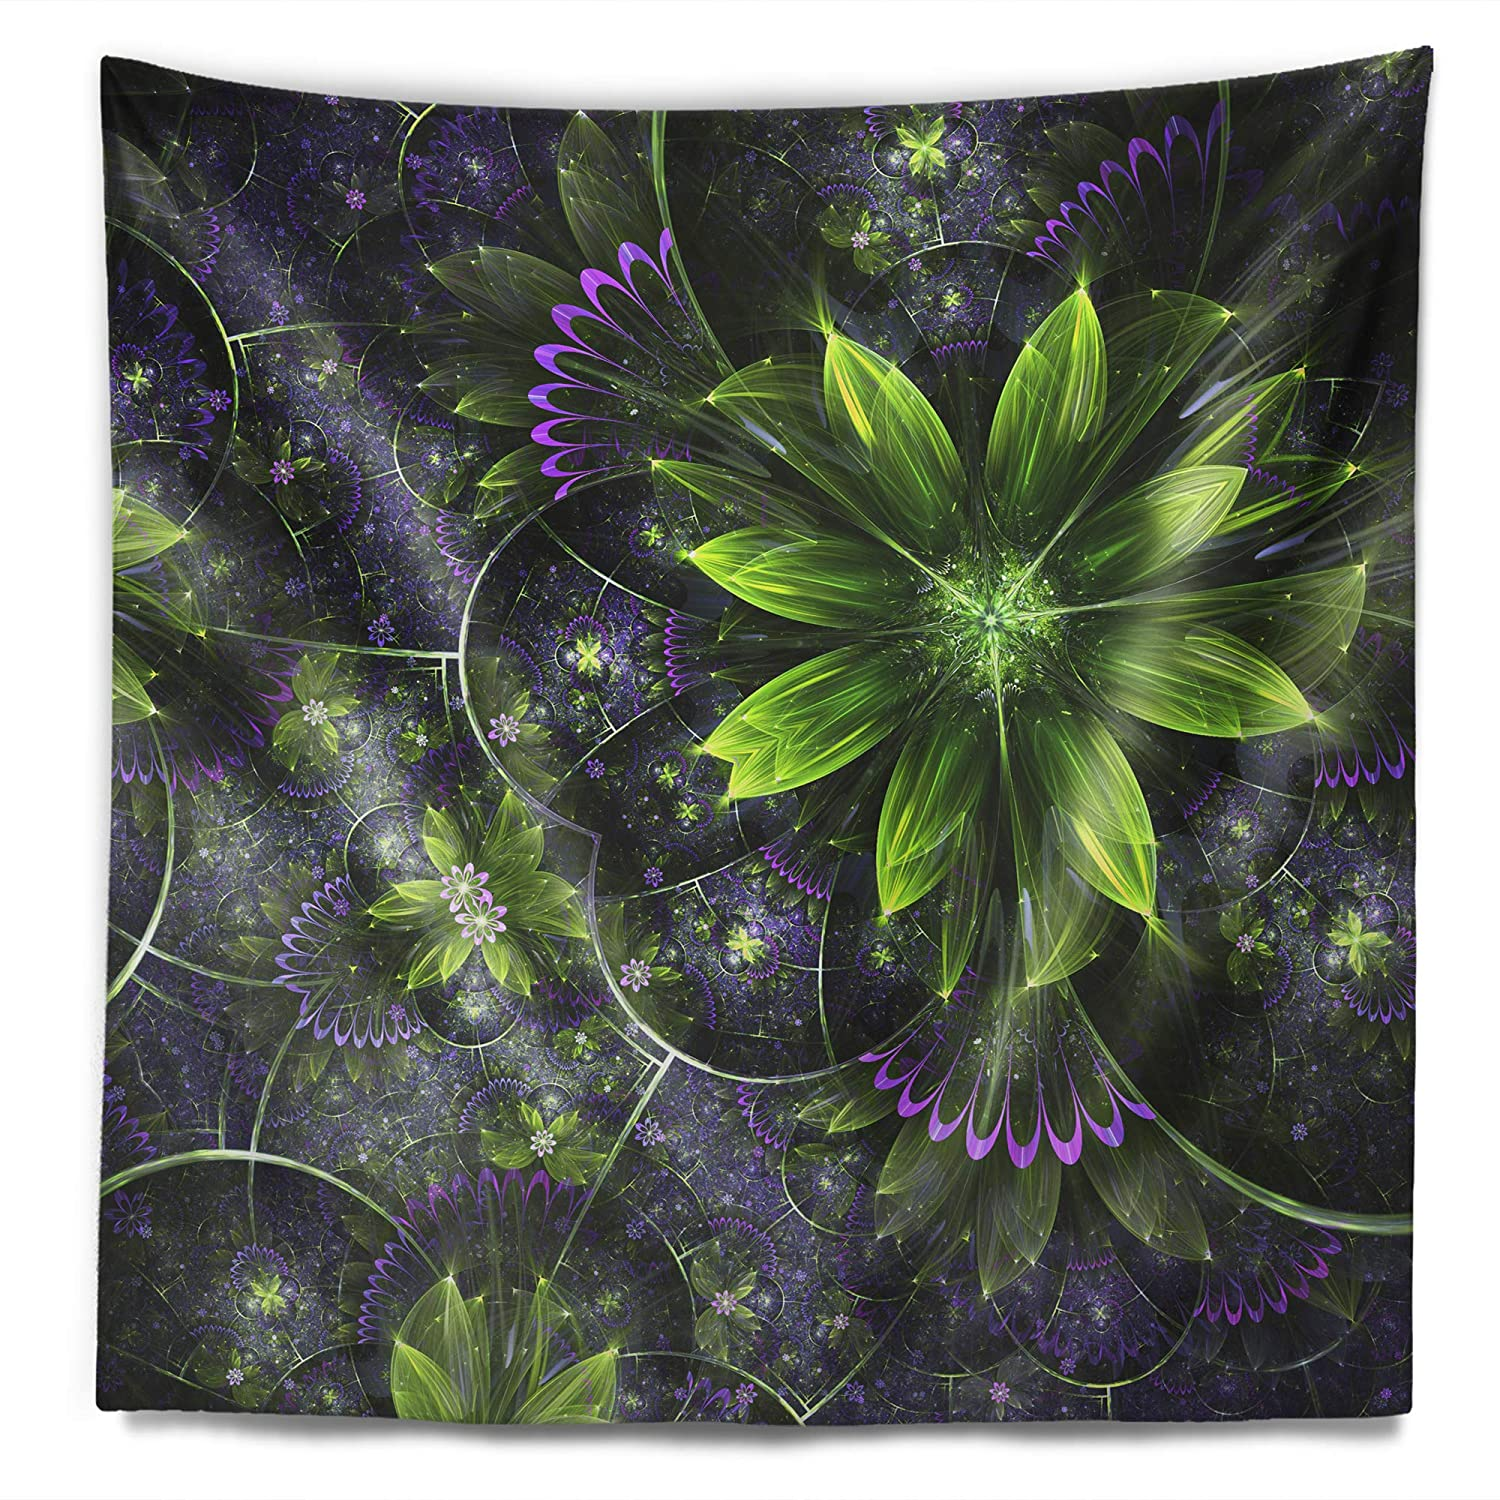 Designart TAP10289-32-39 Glossy Green Purple Fractal Flowers Floral Blanket D/écor Art for Home and Office Wall Tapestry Created On Lightweight Polyester Fabric x 39 in Medium: 32 in